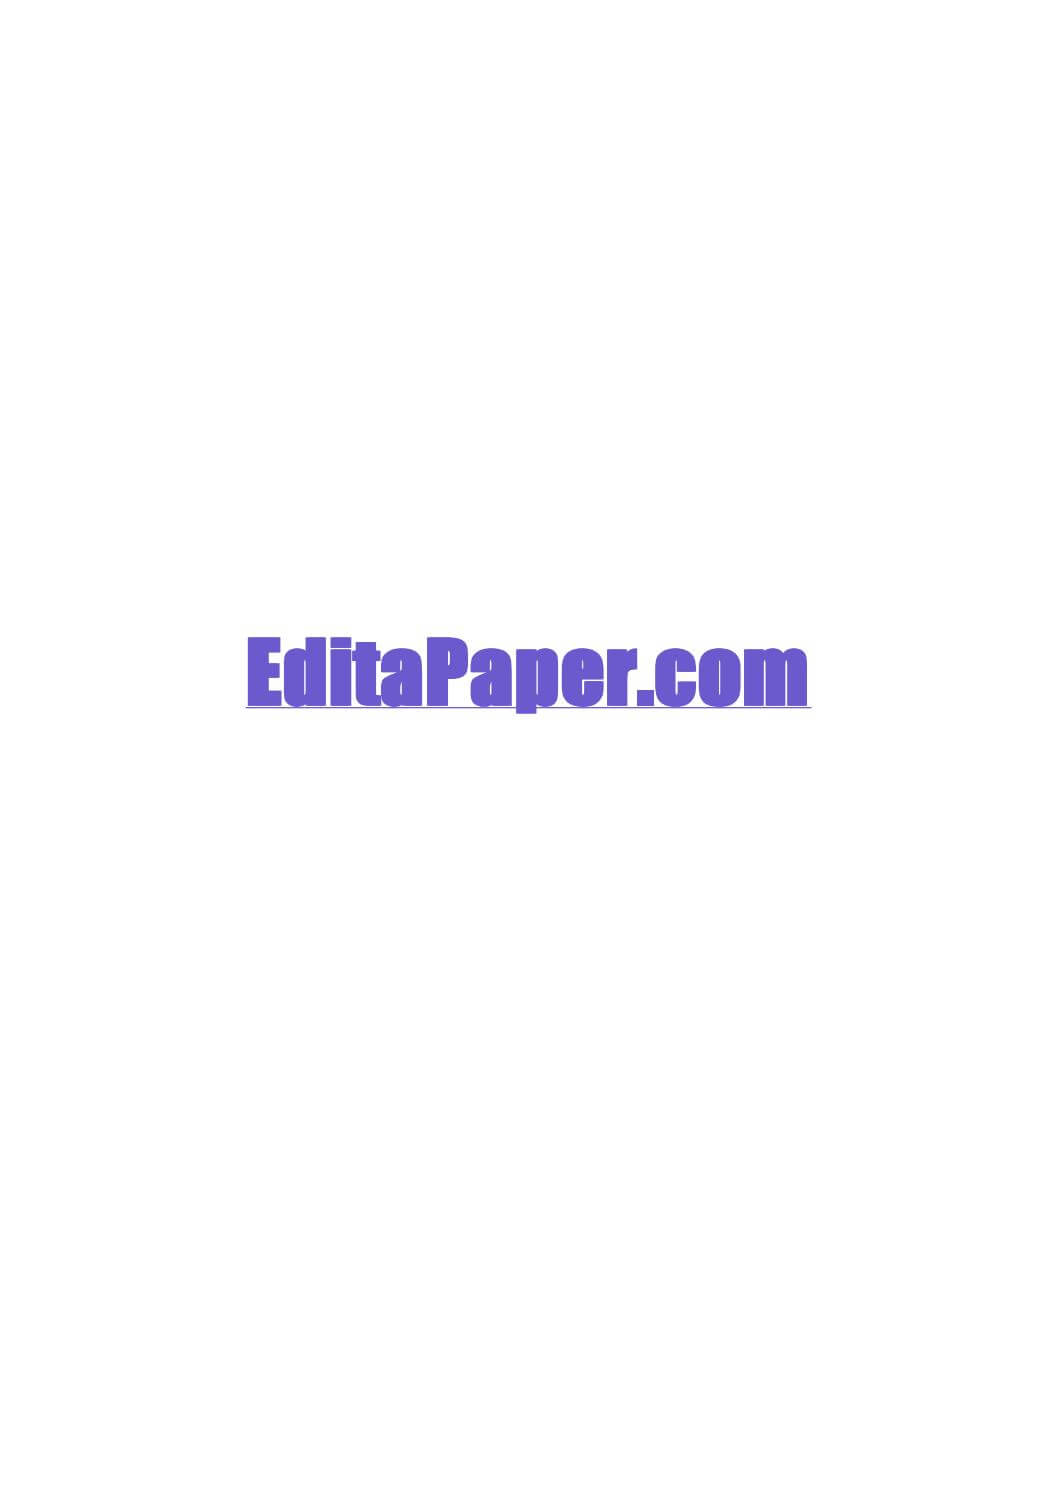 Apa Format Essay Template Word 2010Courtneyixzz – Issuu For Apa Template For Word 2010